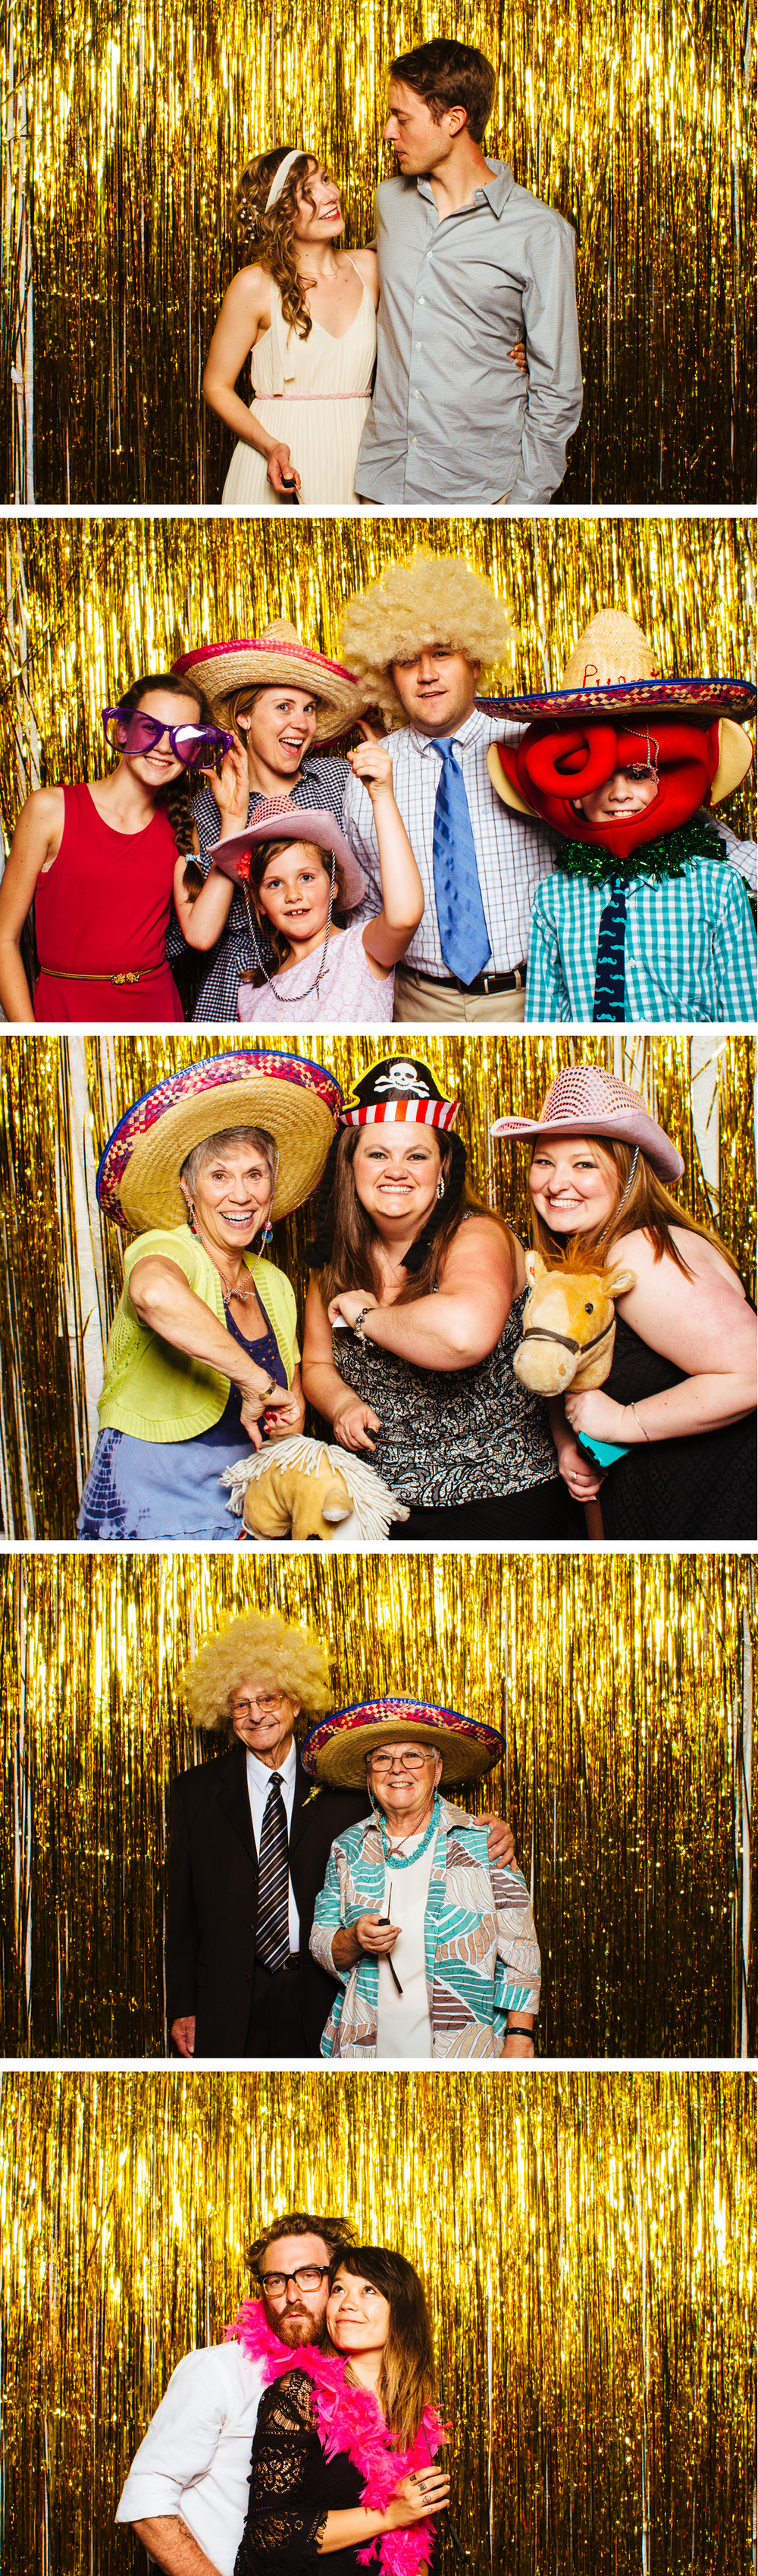 CK-Photo-Nashville-Wedding-Photographer-Photobooth-DL6.jpg